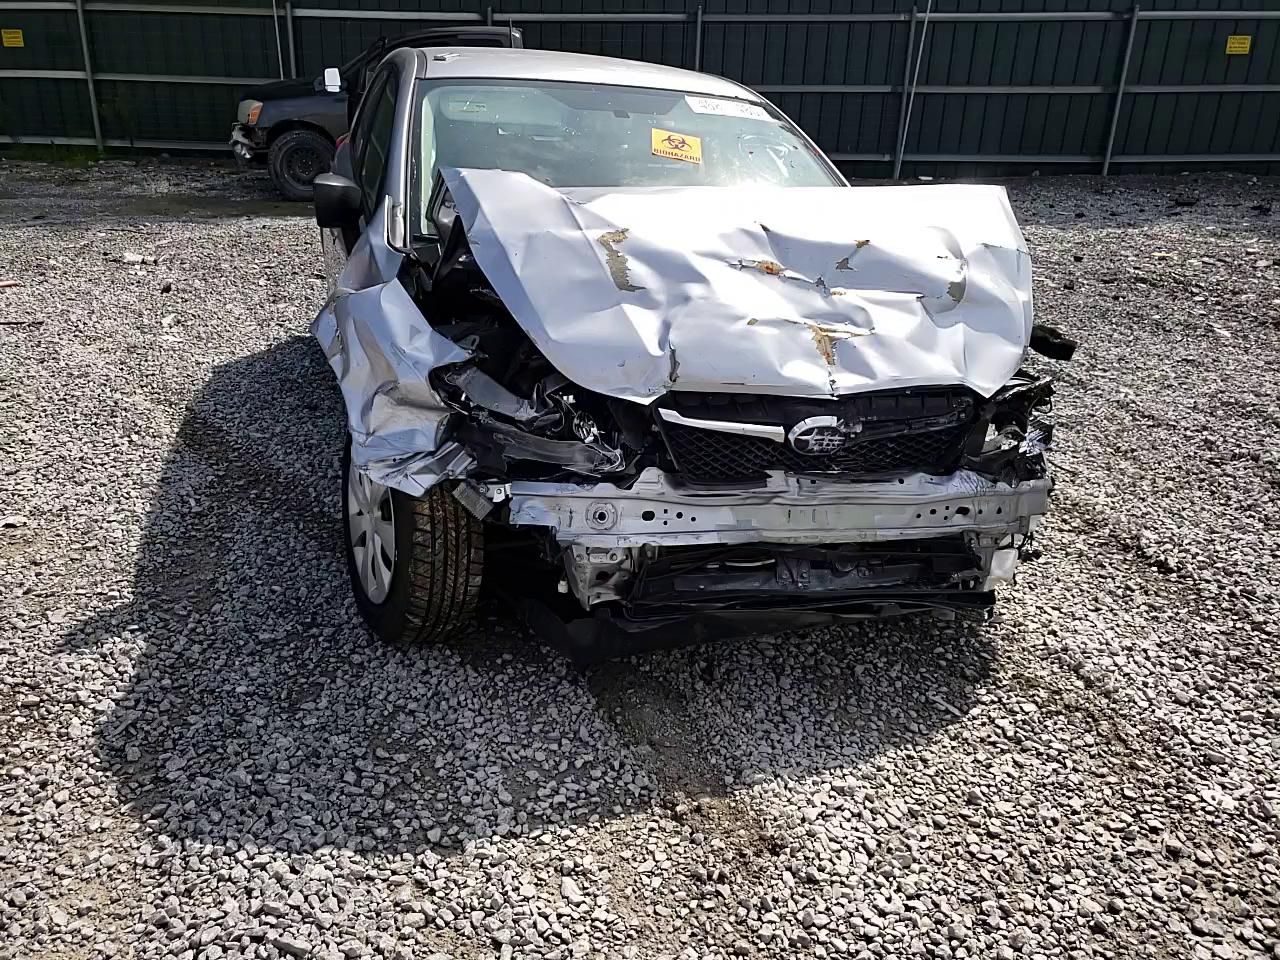 Subaru Impreza salvage cars for sale: 2016 Subaru Impreza